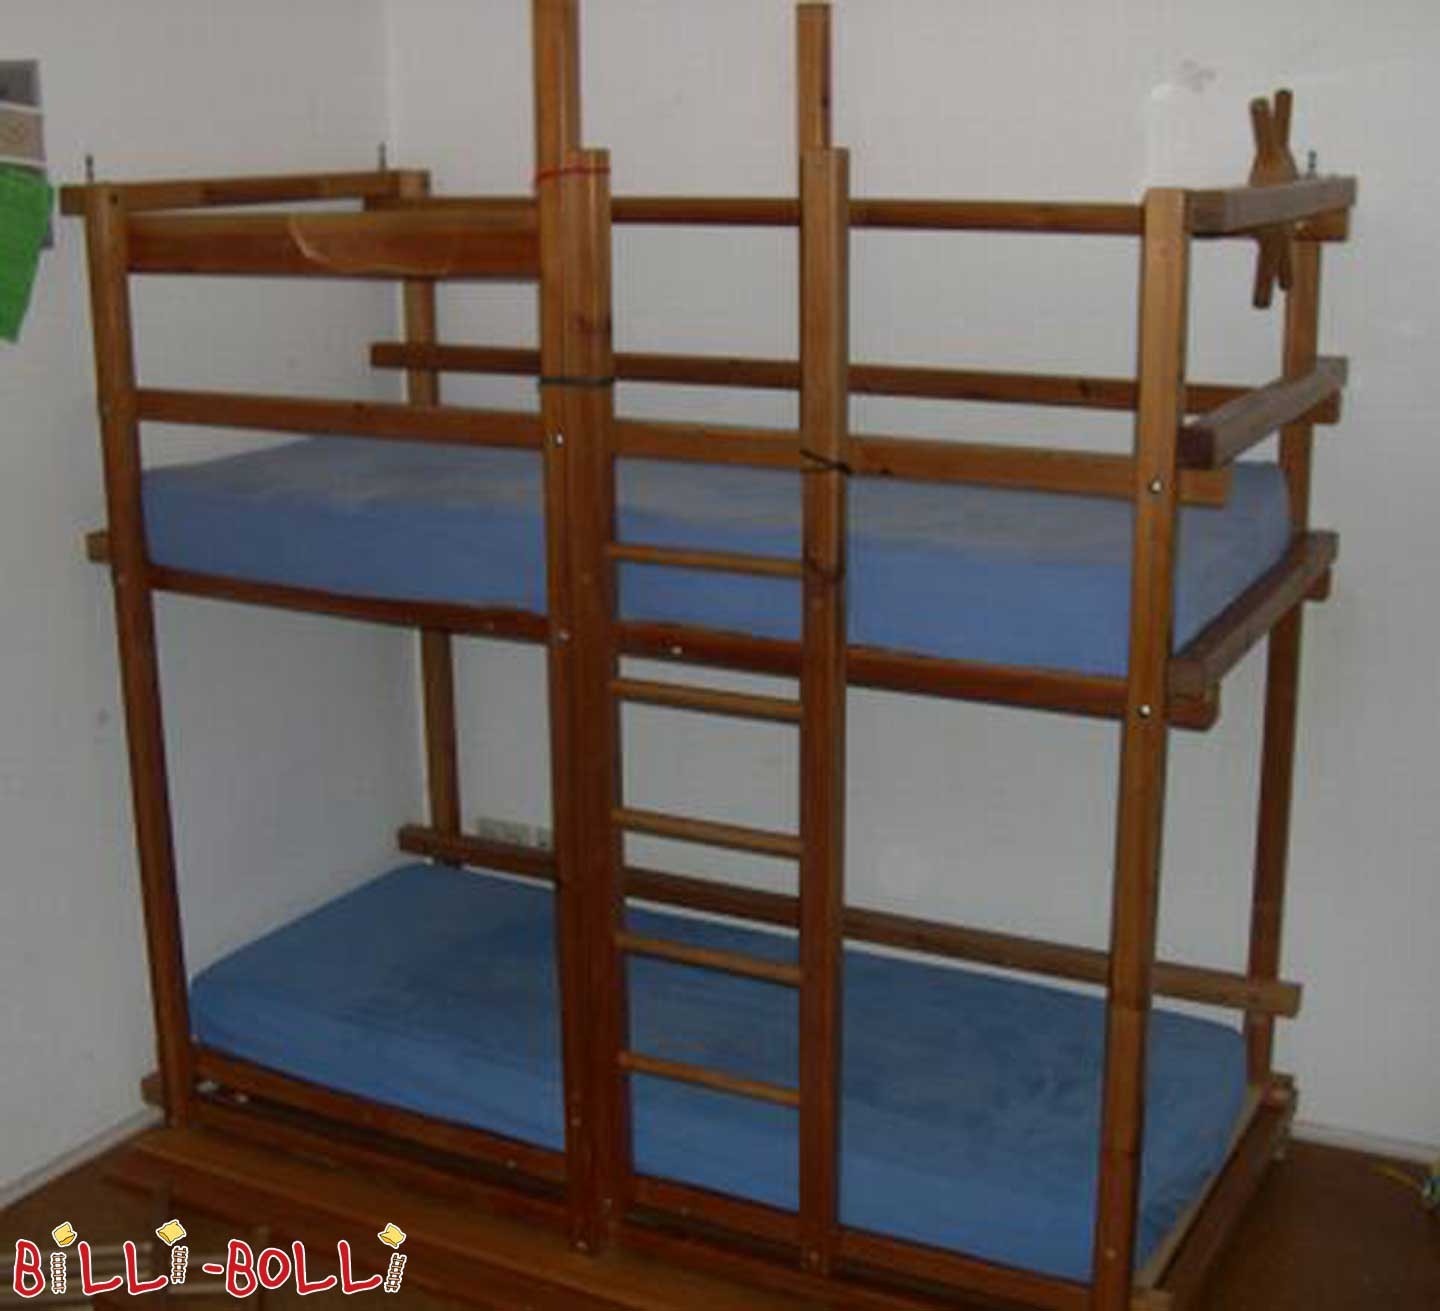 Secondhand page 112 billi bolli kids furniture for Second hand bunk beds